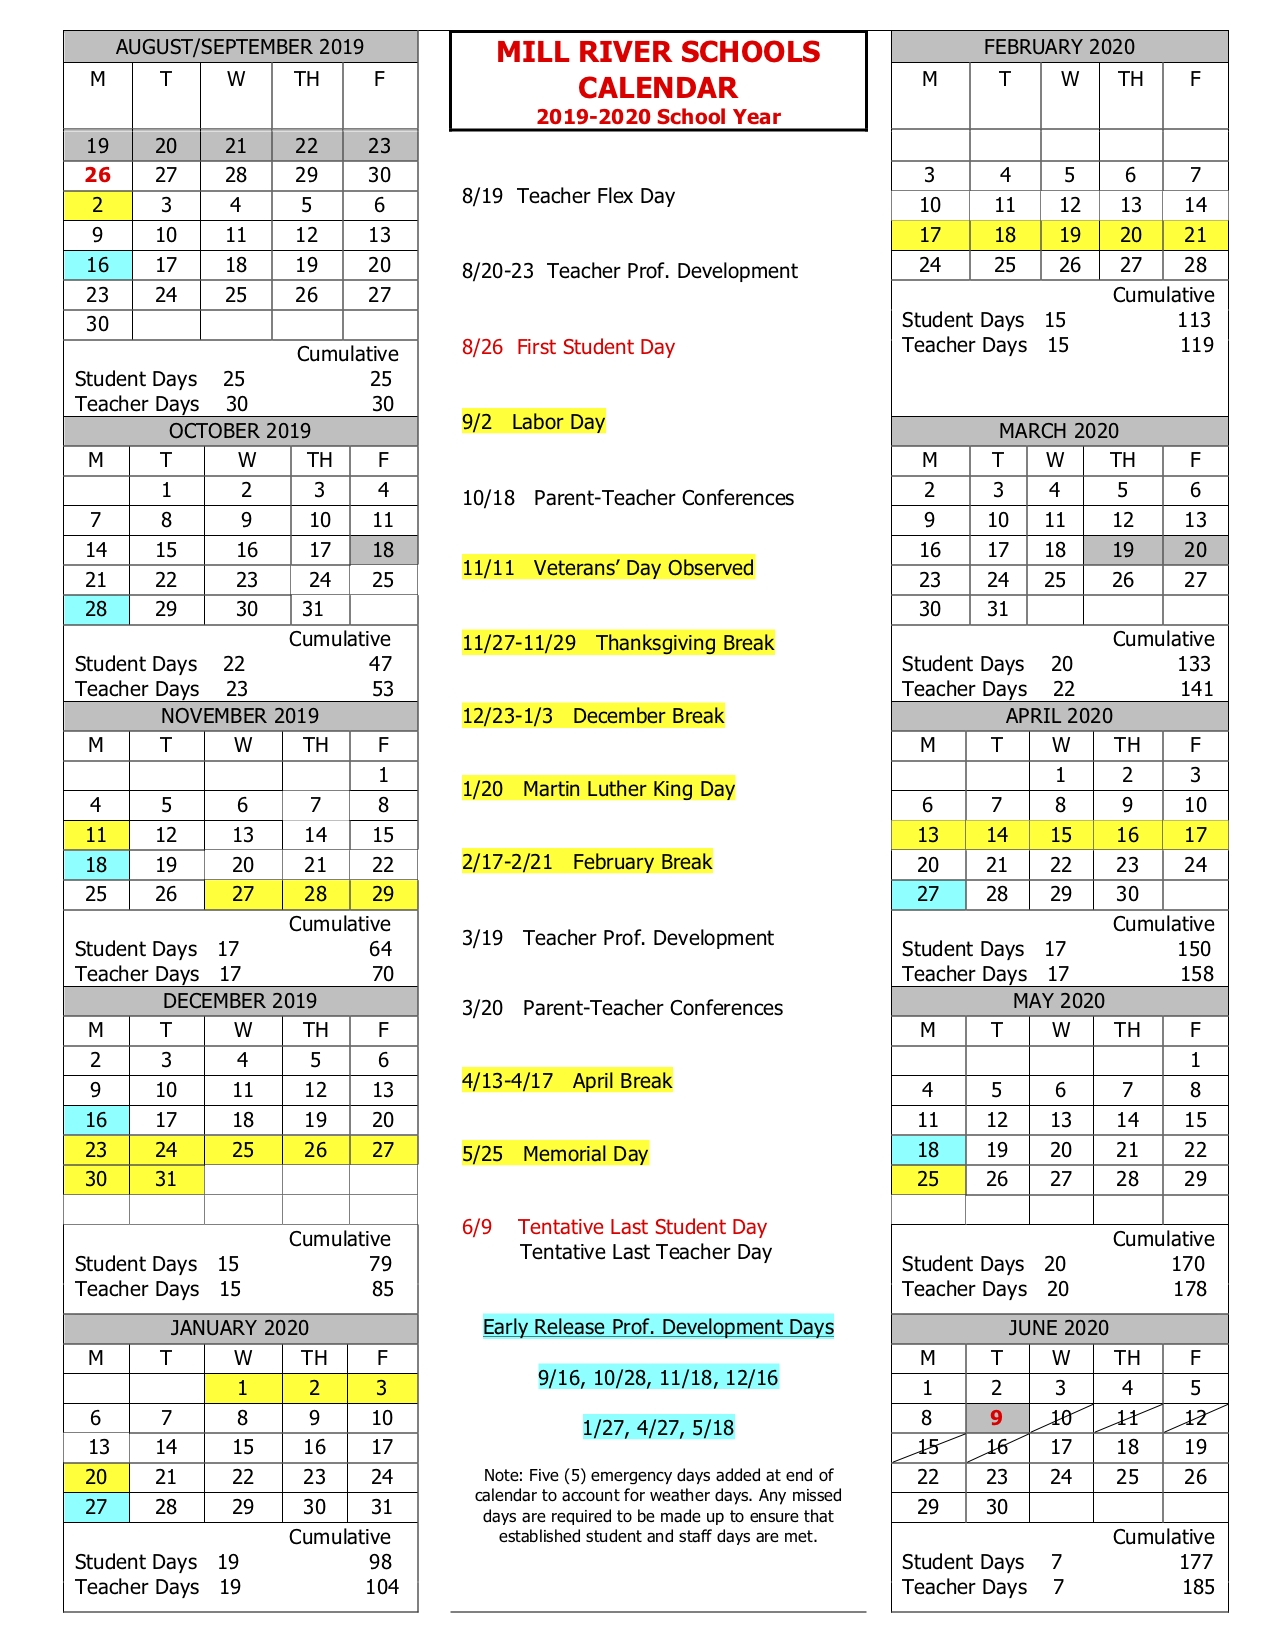 School-Year Calendar – Mill River Schools